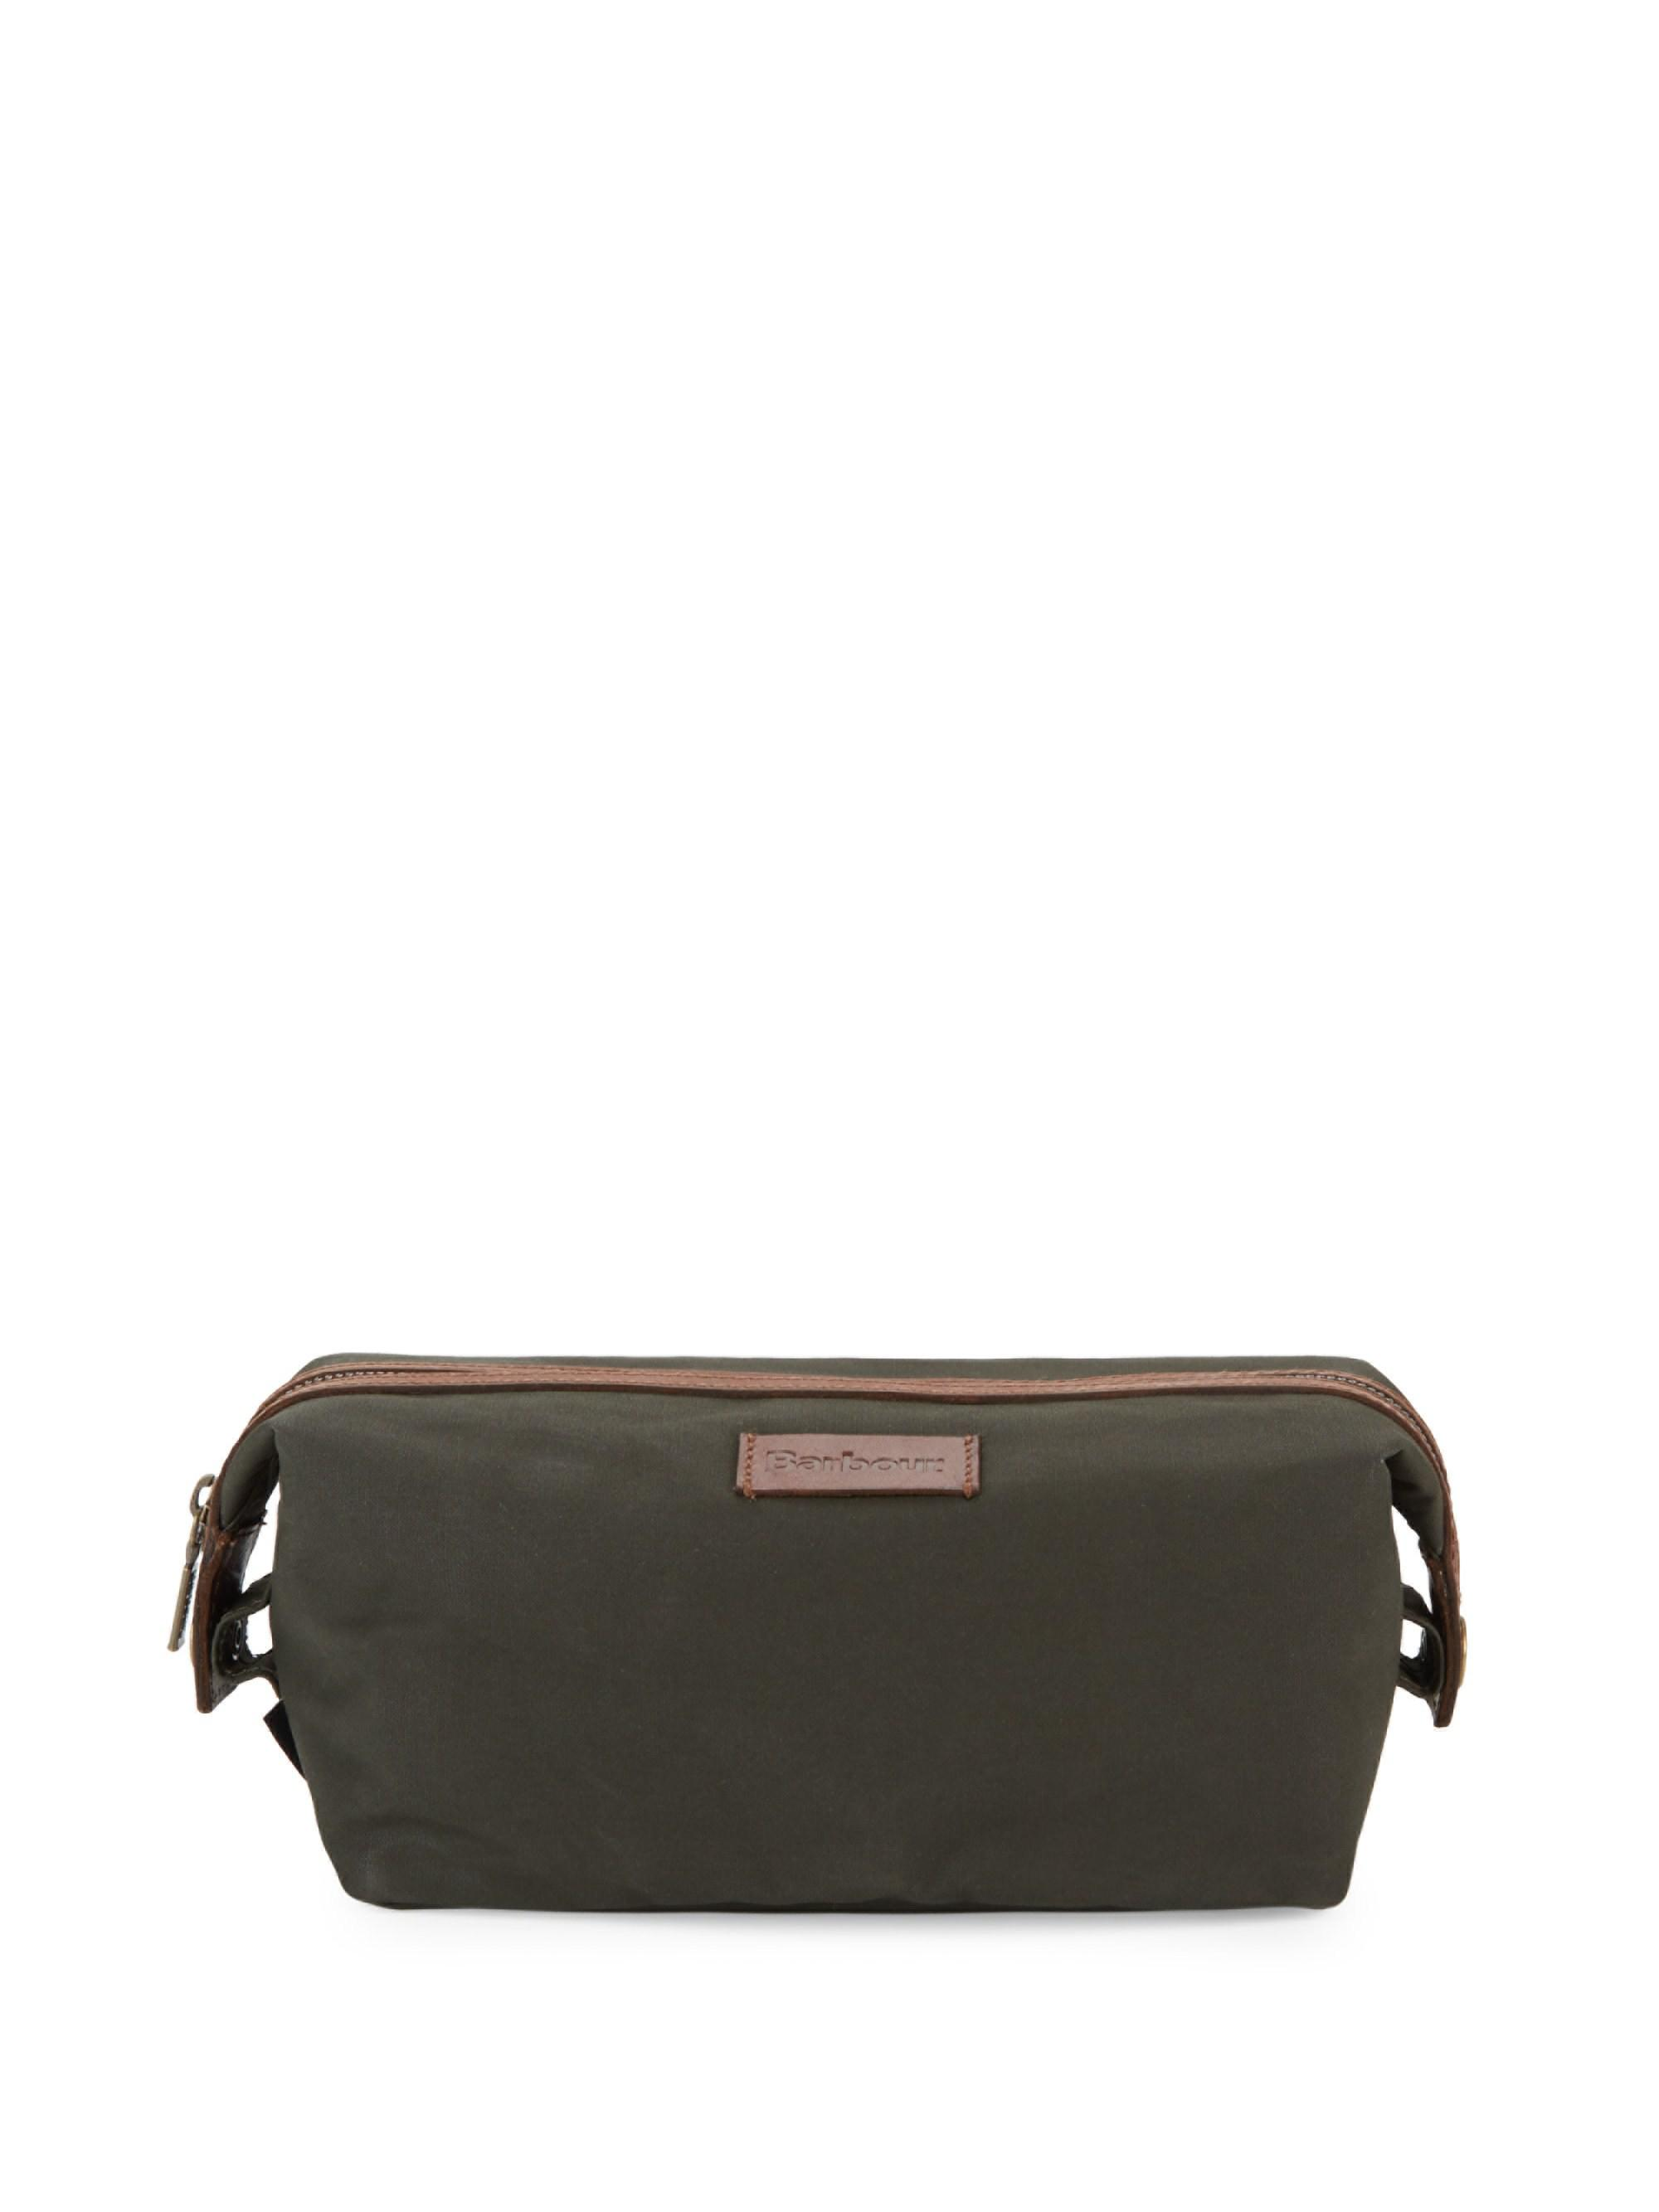 4177050afc3f Barbour Drywax Convertible Washbag in Green - Lyst